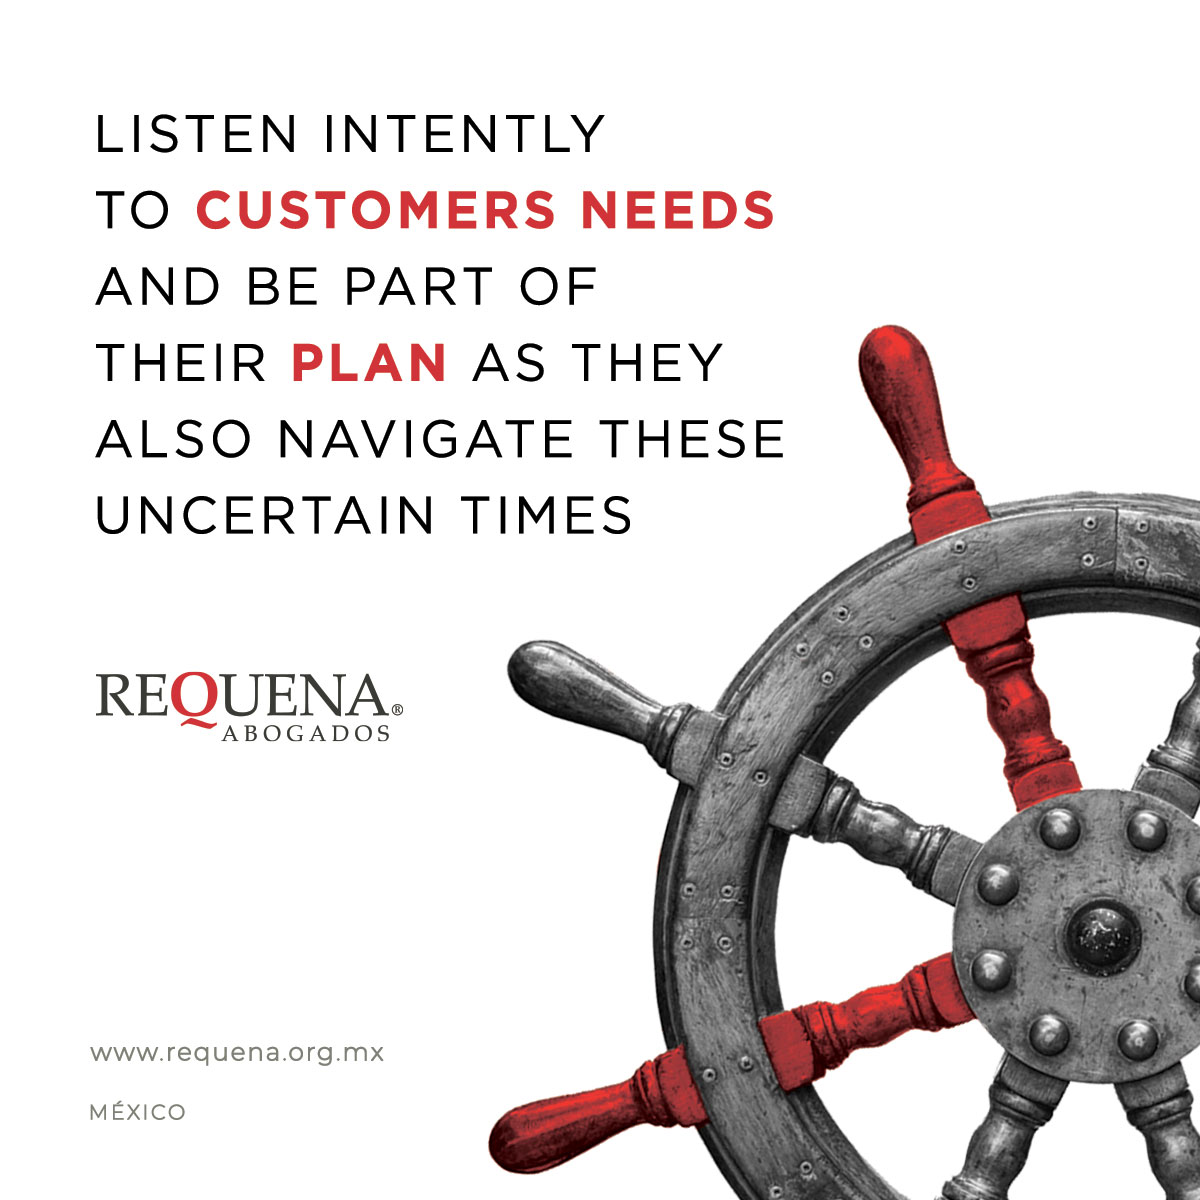 Listen intently to customers needs and be part of their plan as they also navigate these uncertain times | Covid-19 | Requena Abogados